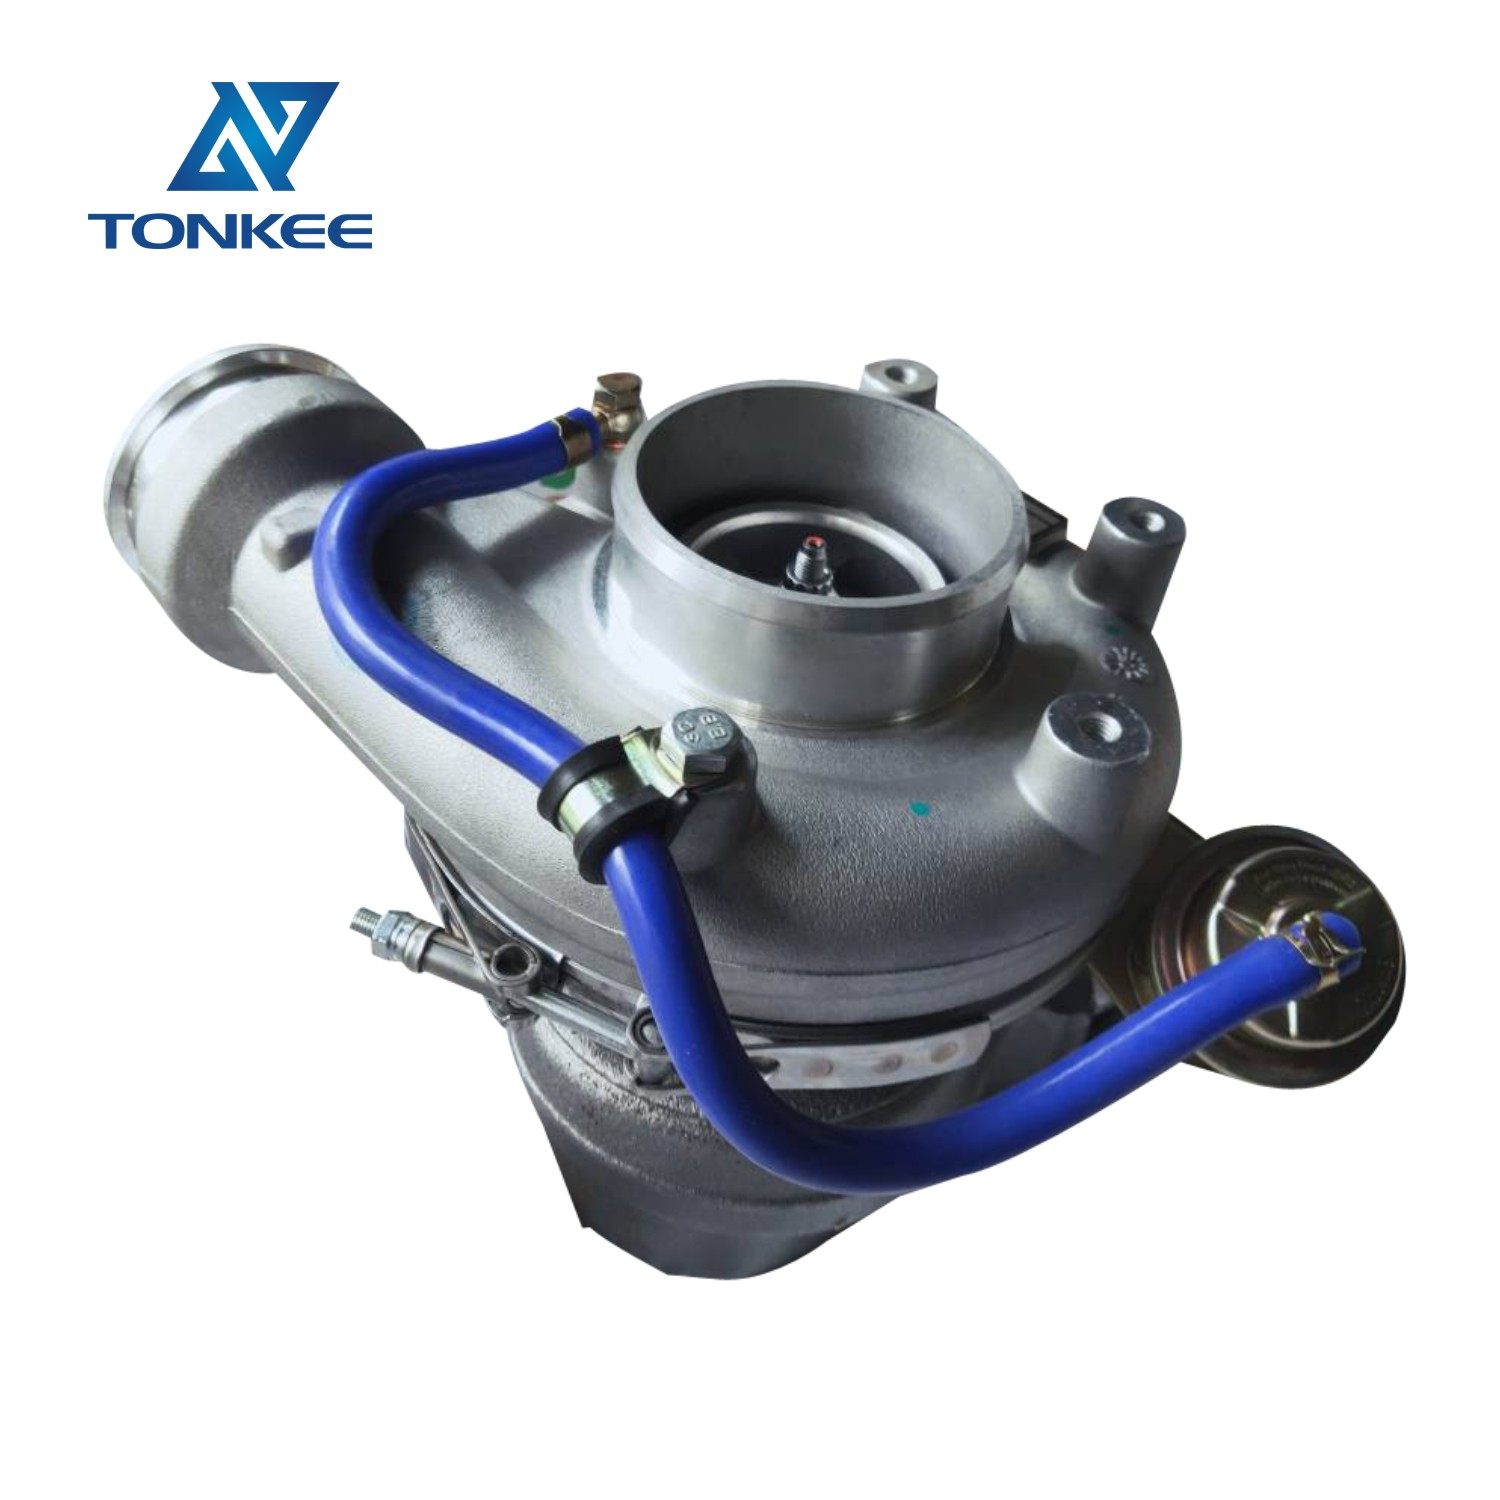 brand new earthmoving machinery aftermarket parts 04913771 B2G 12709880124 TCD 7.8 250 kW Tier4f Industry diesel engine turbo EC350 EC350D D8K excavator engine turbocharger suitable for DEUTZ VOLVO